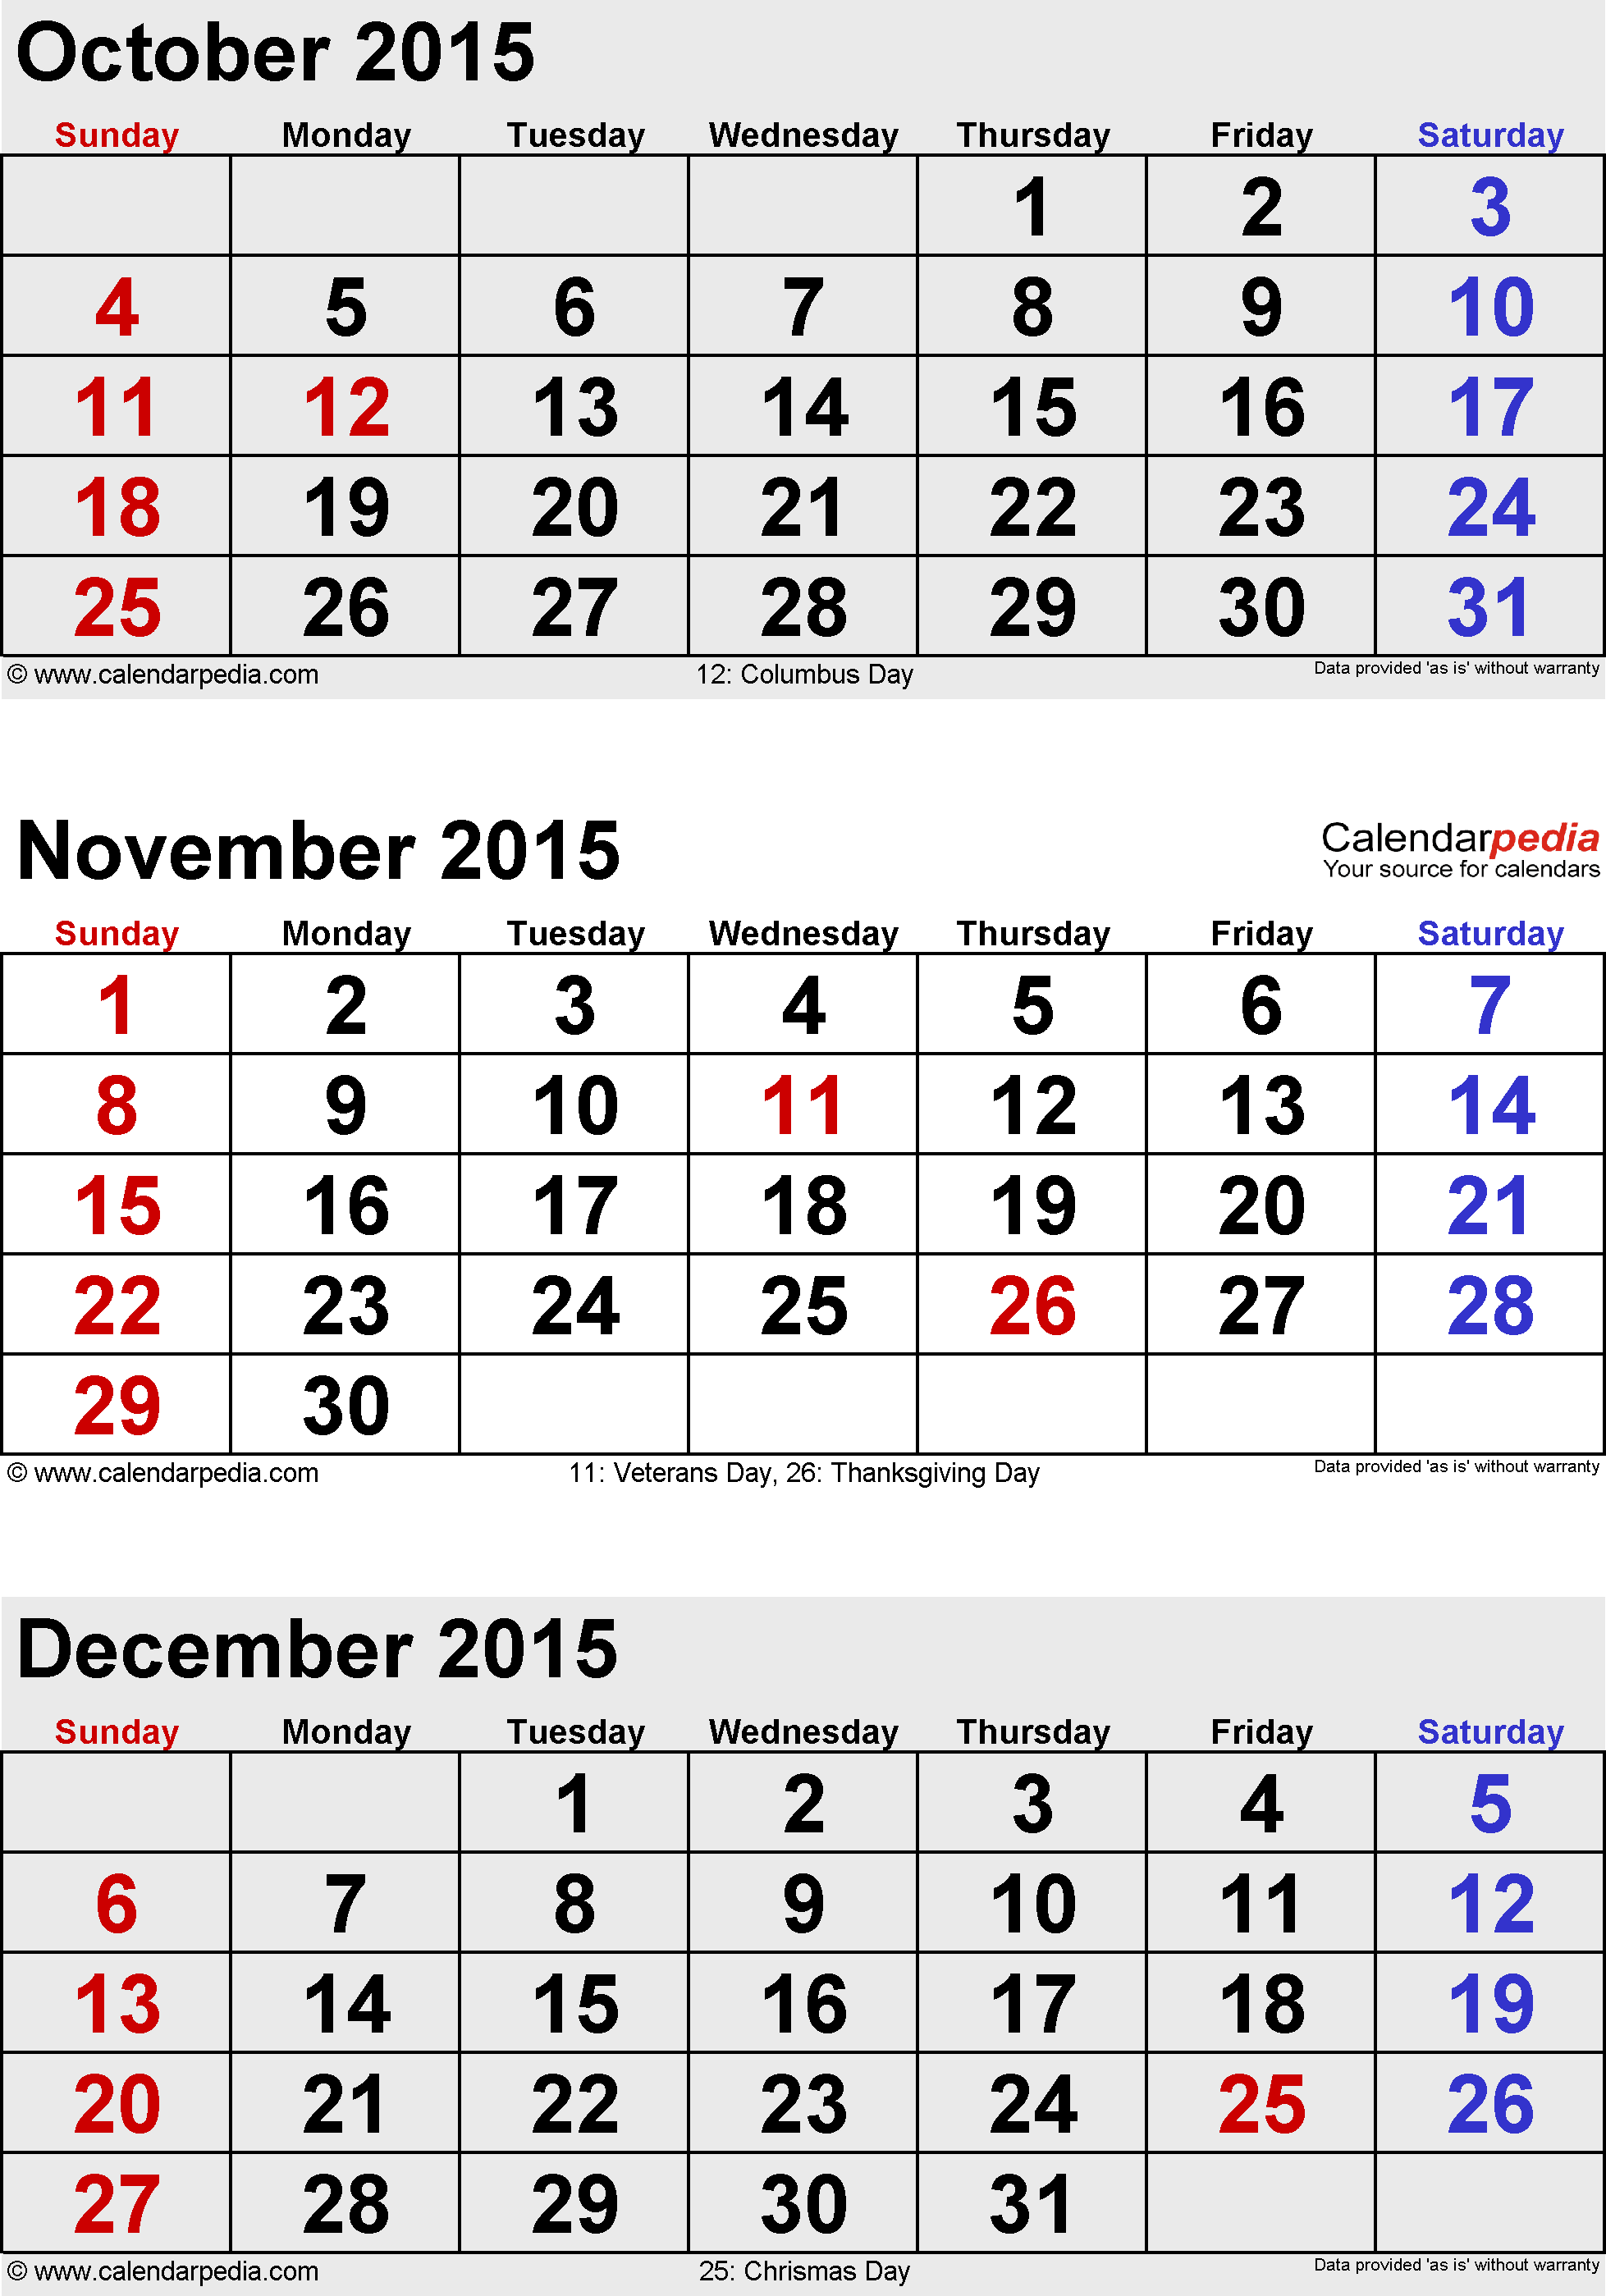 3 months calendar November/December 2015 & January 2016 in portrait format